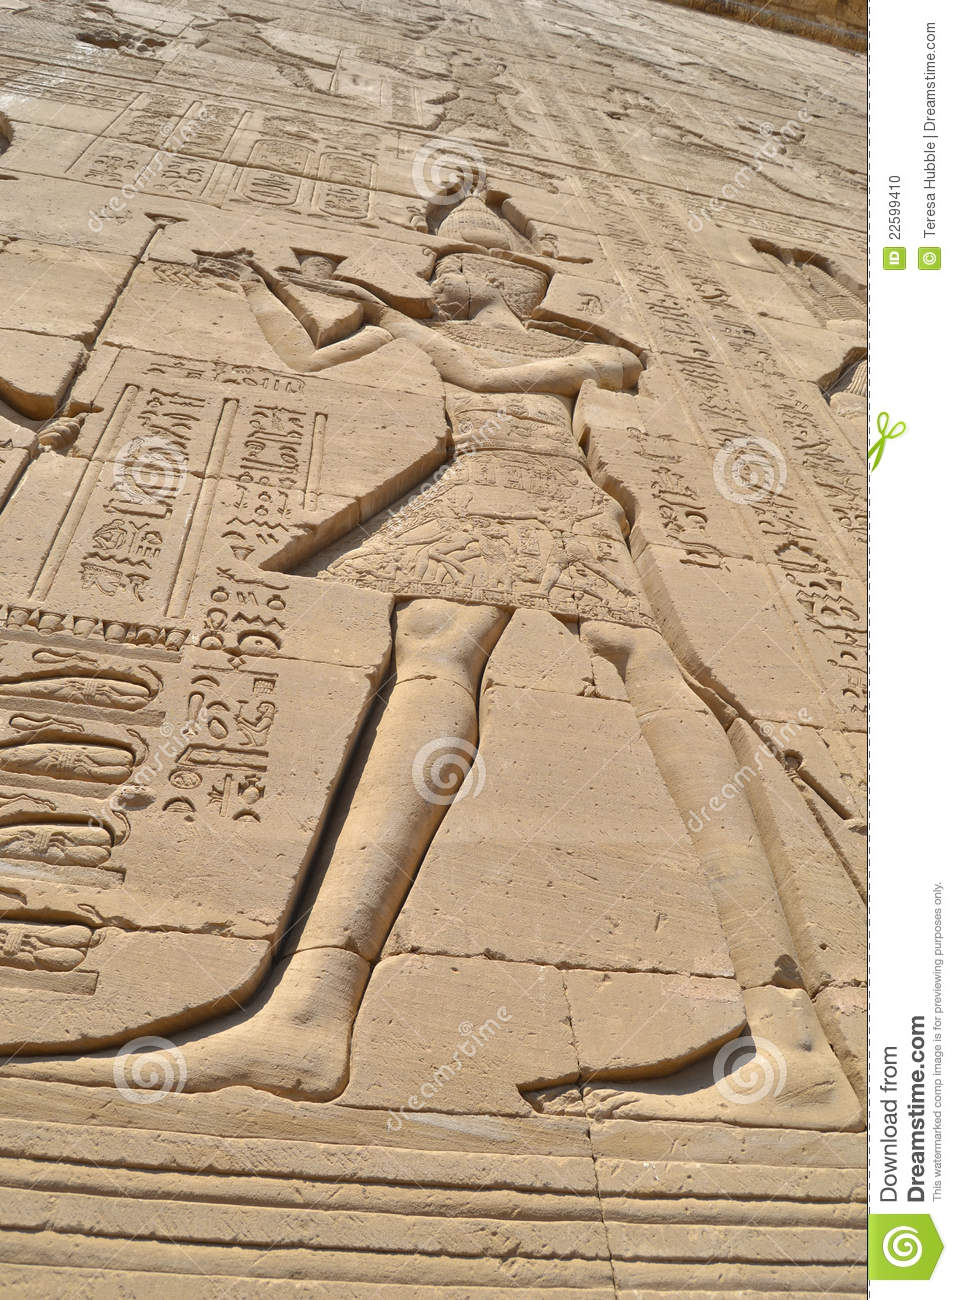 Egyptian hieroglyphic carvings on a wall stock photo